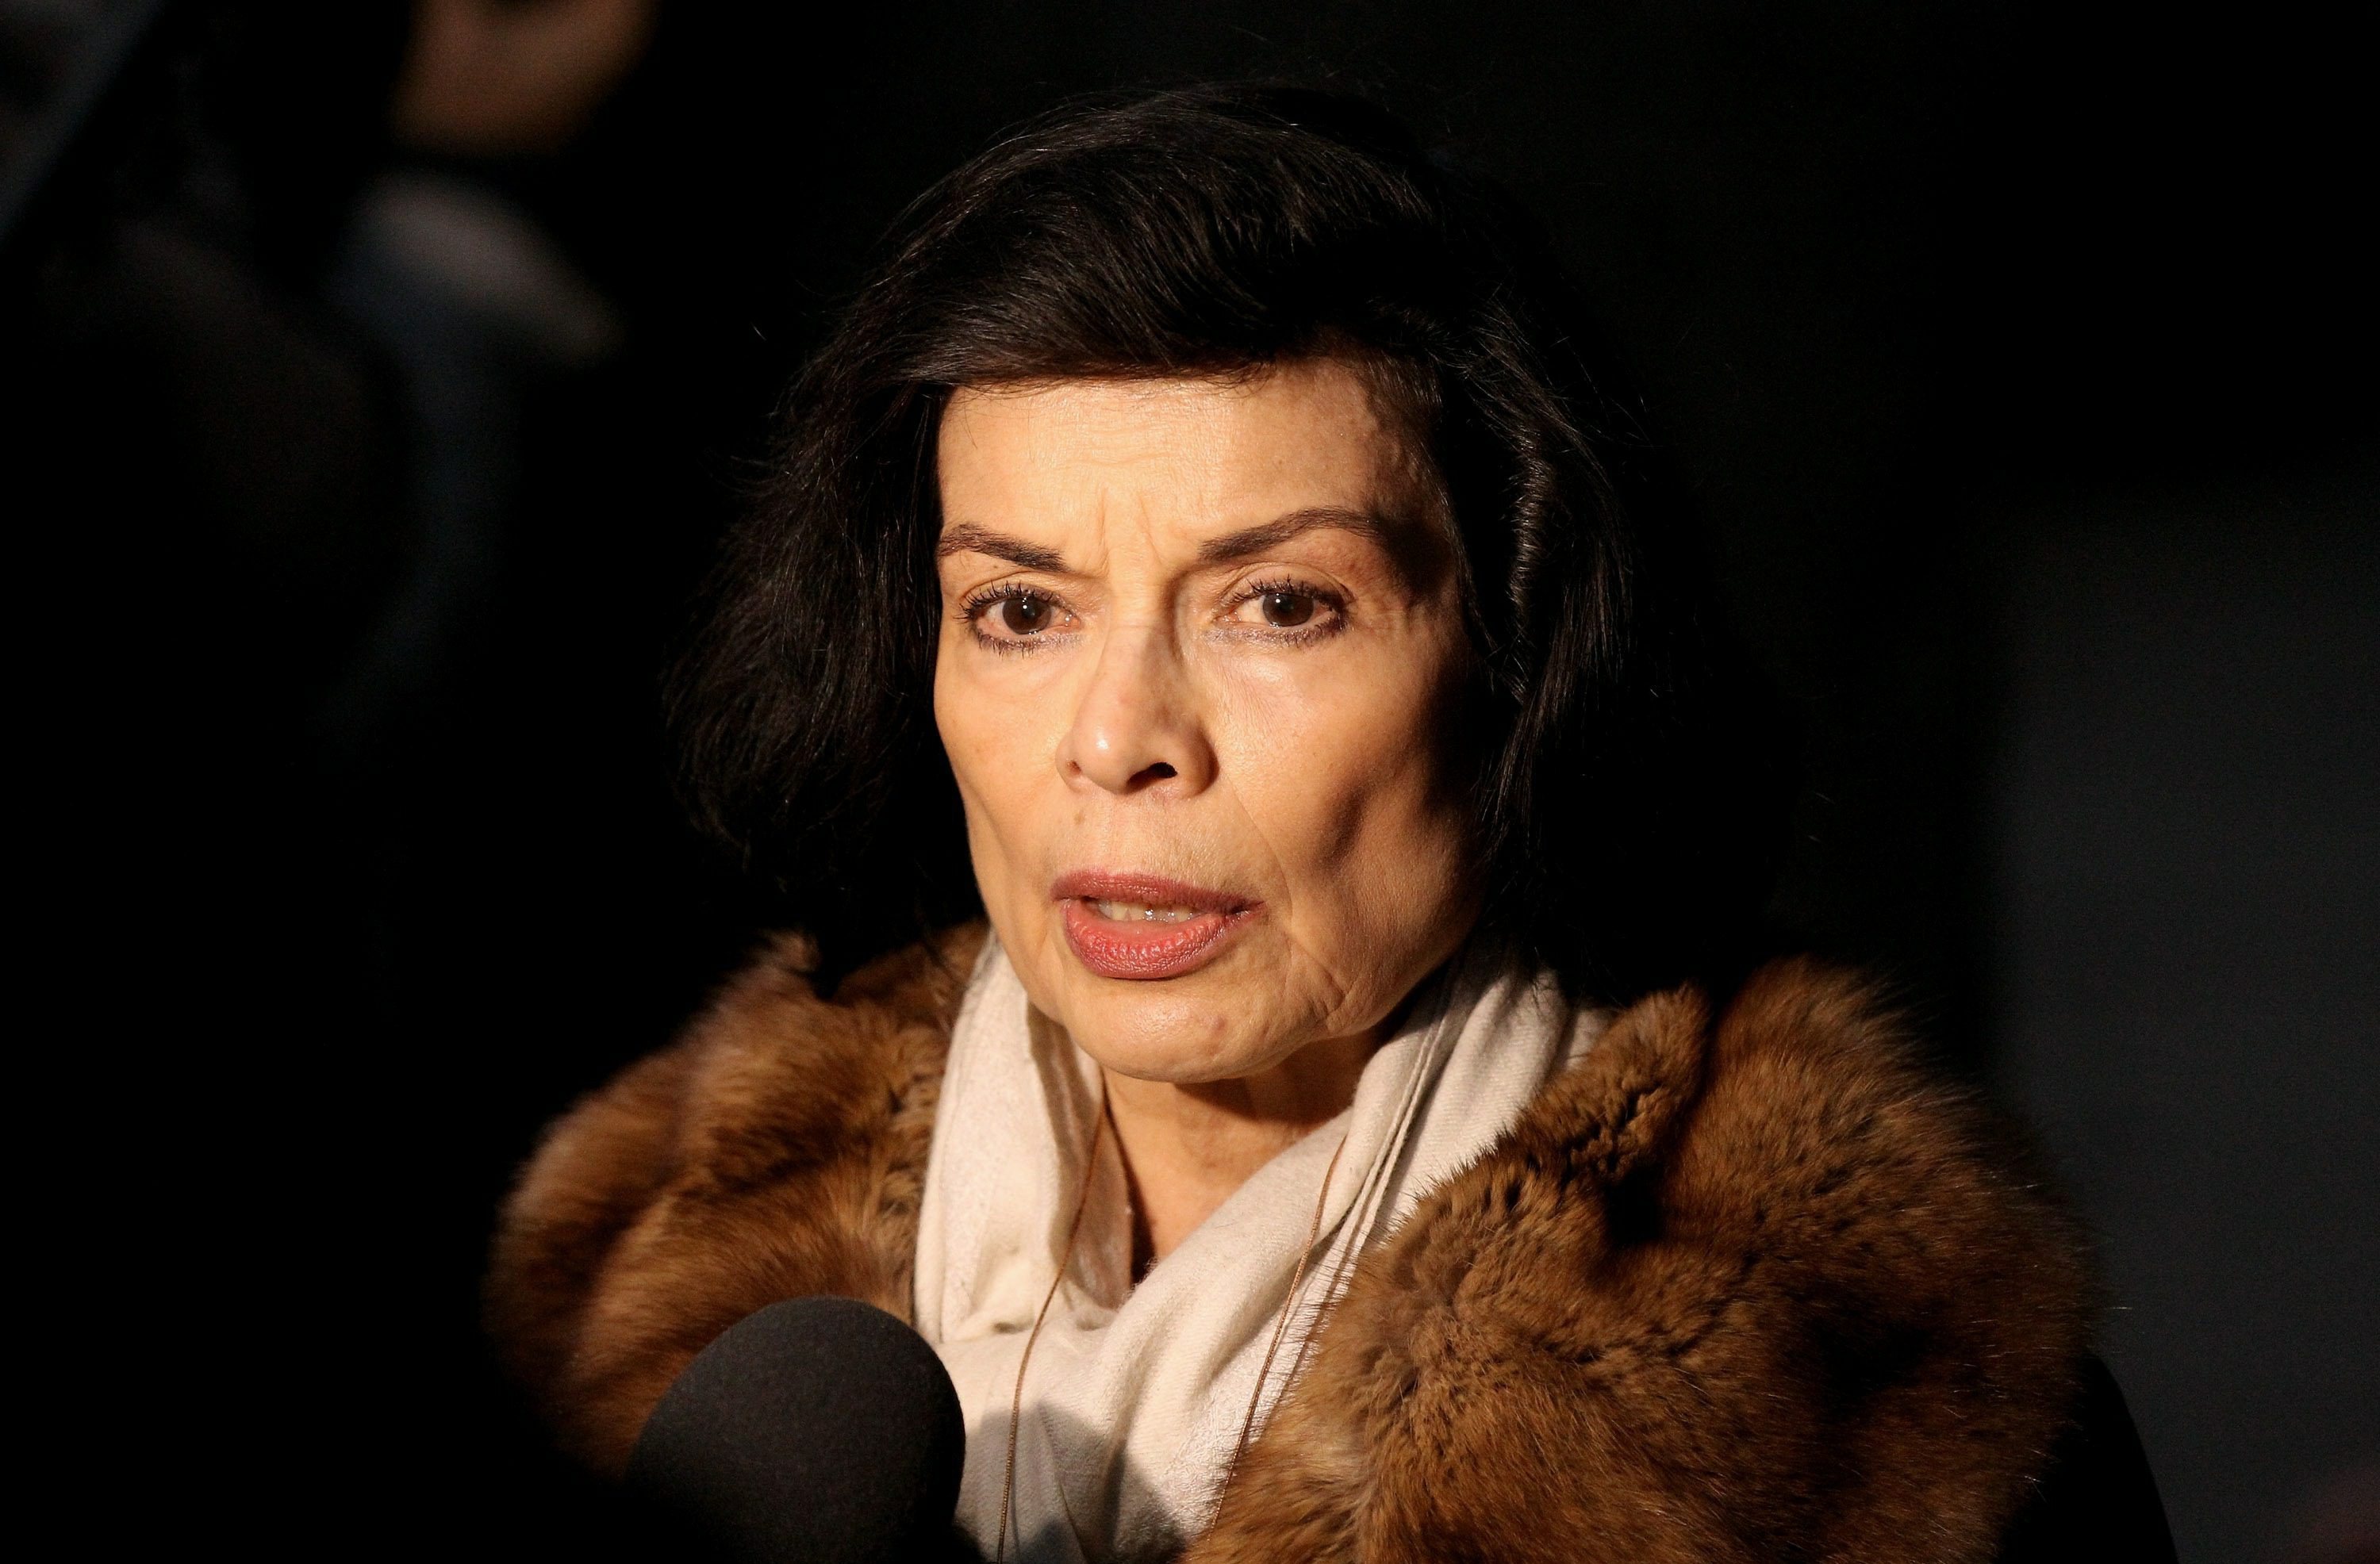 Bianca Jagger leaves the City of Westminster Magistrates Court on December 14, 2010 in London, England. Wikileak's Julian Assange has been released on conditional bail. LONDON, ENGLAND - DECEMBER 14 (Photo by Oli Scarff/Getty Images)